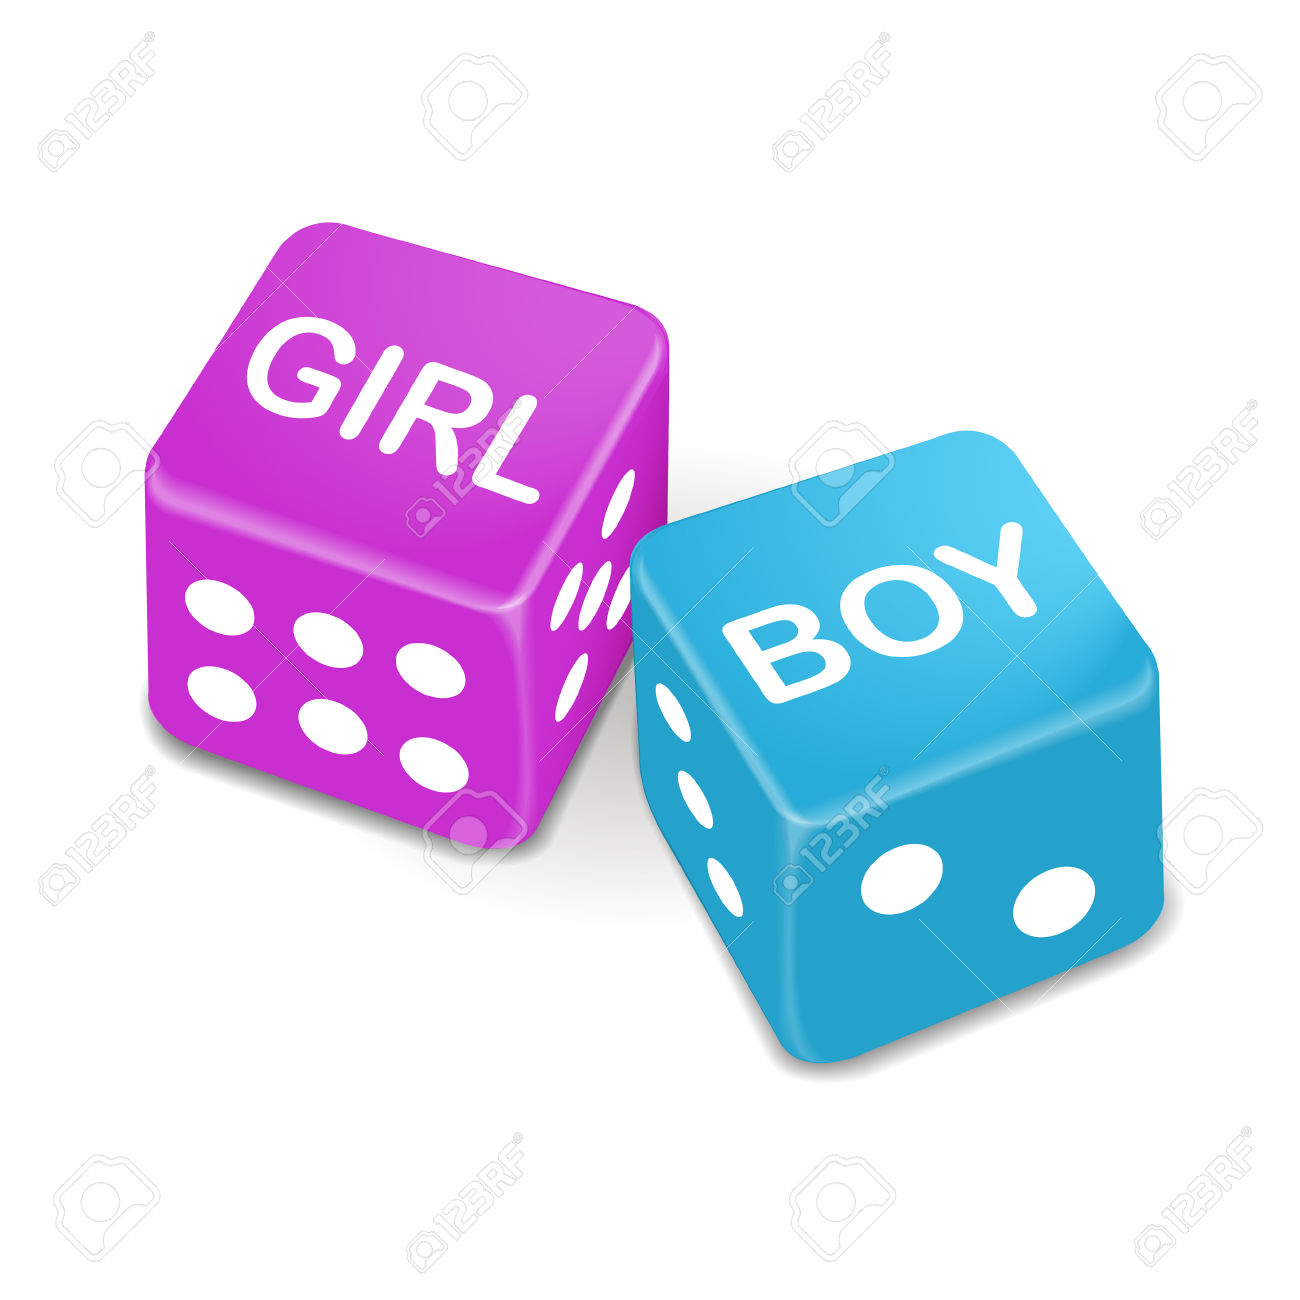 Girl And Boy Words On Two Red Dice Isolated On White Background.